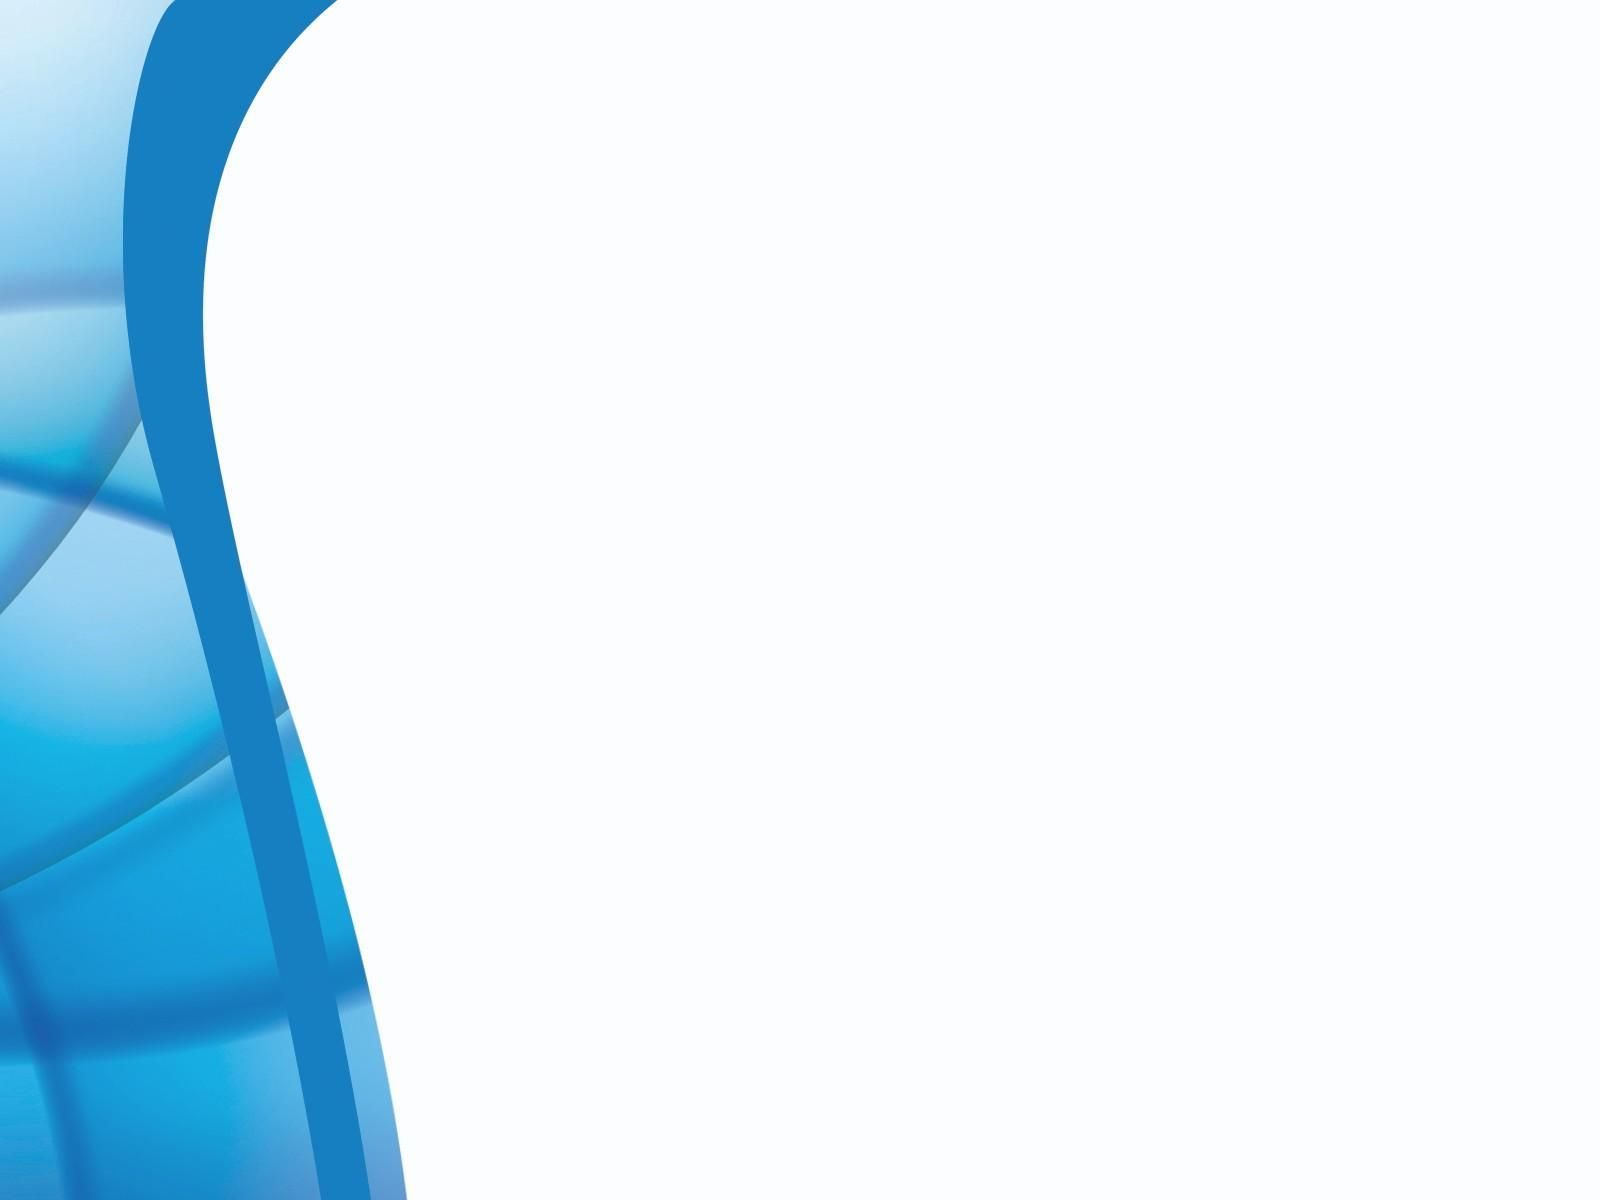 White And Blue Abstract Wallpapers Widescreen On Wallpaper 1080p Hd Abstract Wallpaper Blue Abstract Abstract